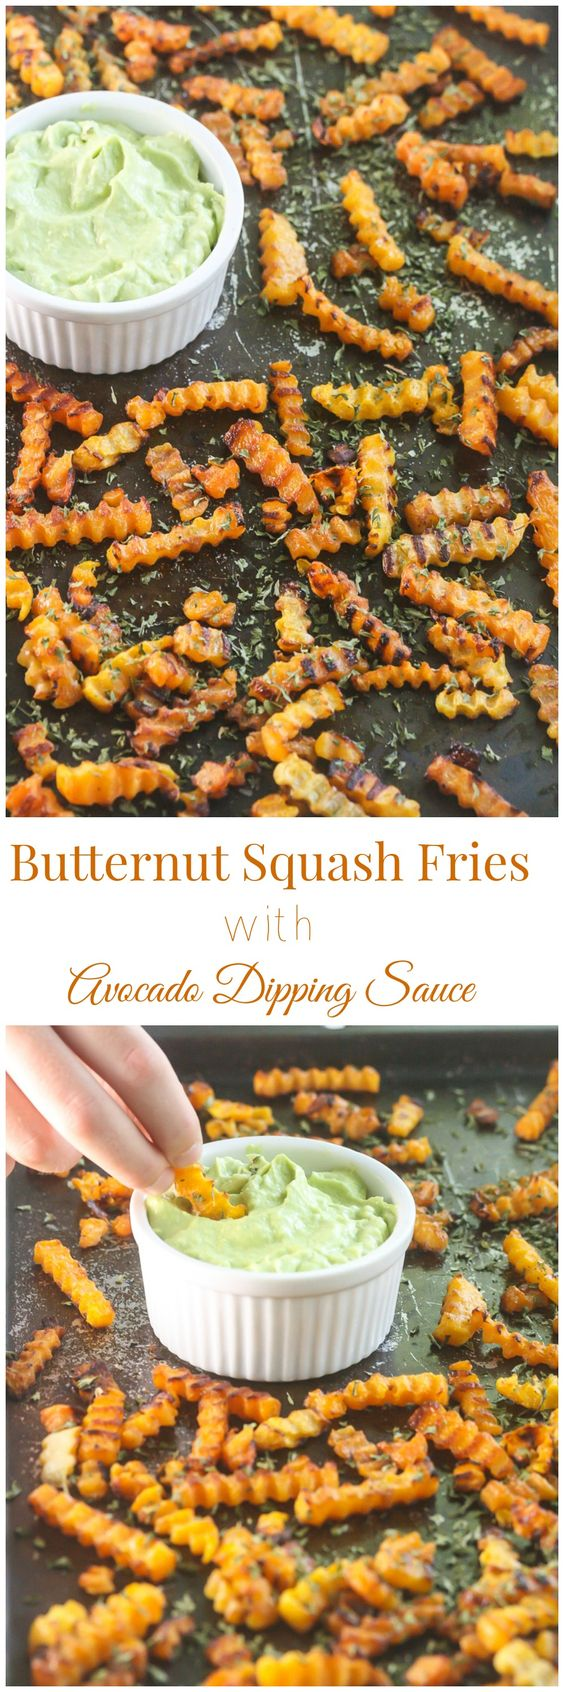 These Butternut Squash Fries with Avocado Dipping Sauce are packed with vitamins and fiber. Even potato lovers will ask for a second helping. From Lauren Kelly Nutrition